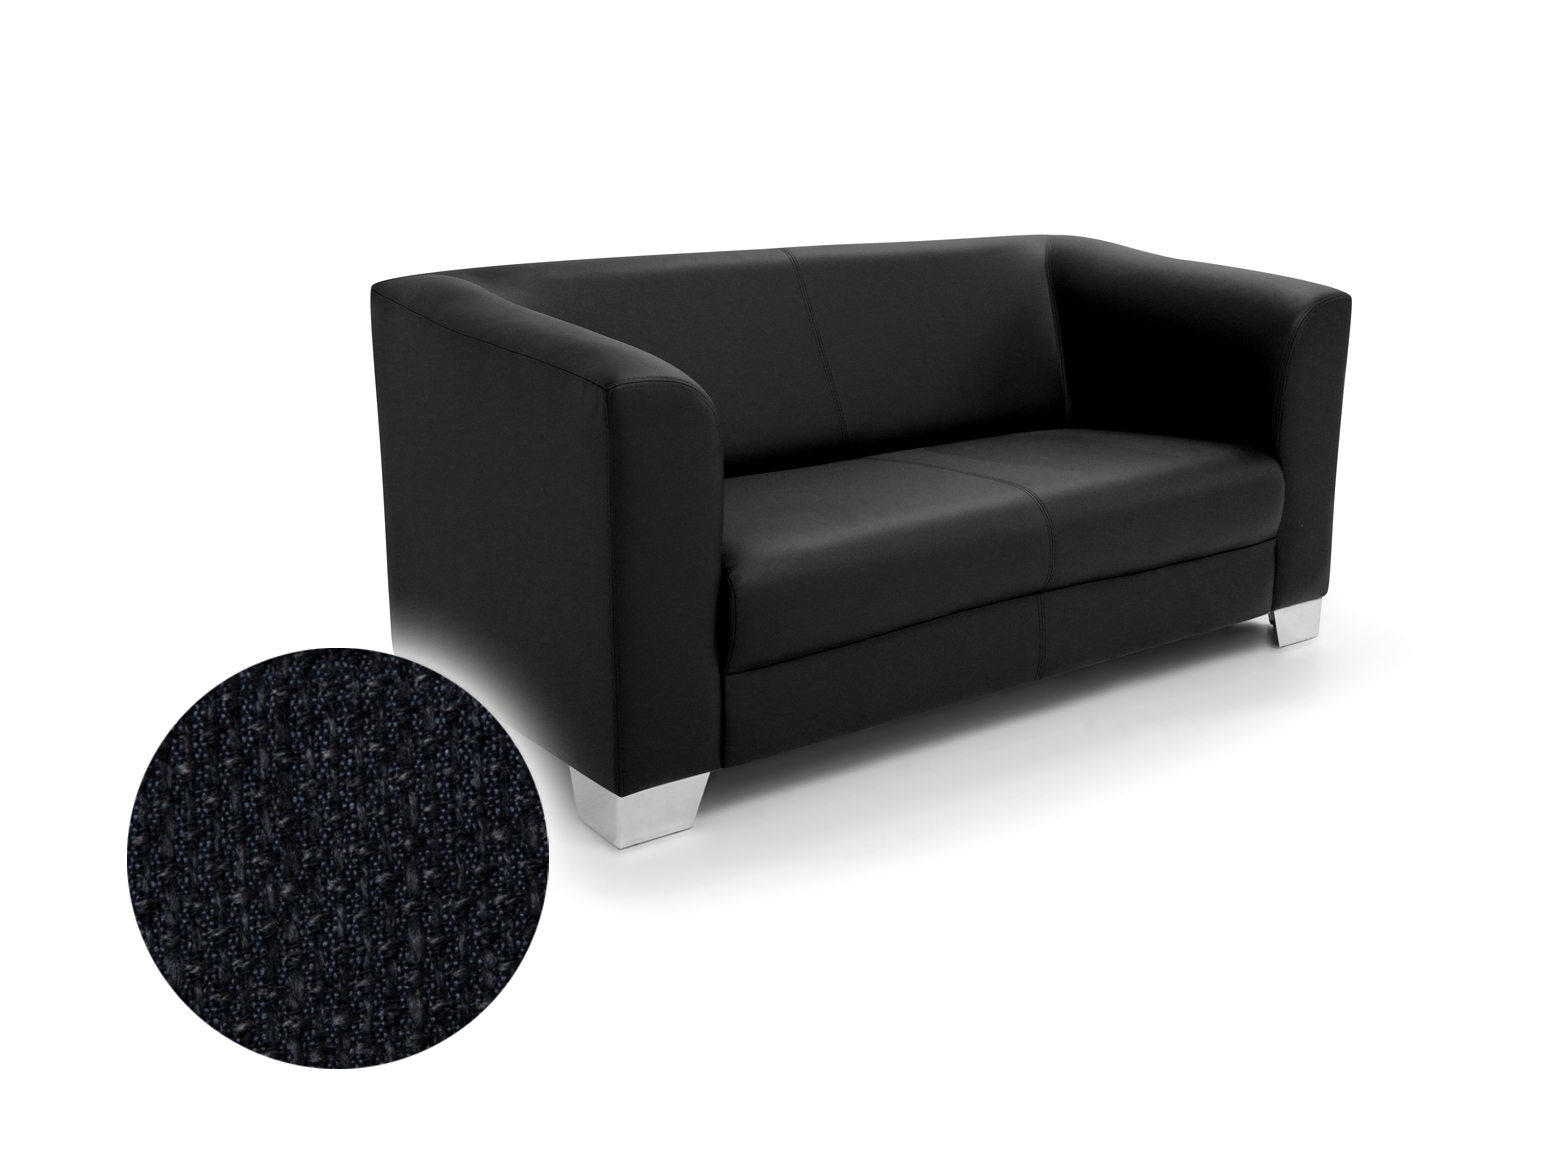 chicago 2 sitzer sofa webstoff berlin schwarz. Black Bedroom Furniture Sets. Home Design Ideas